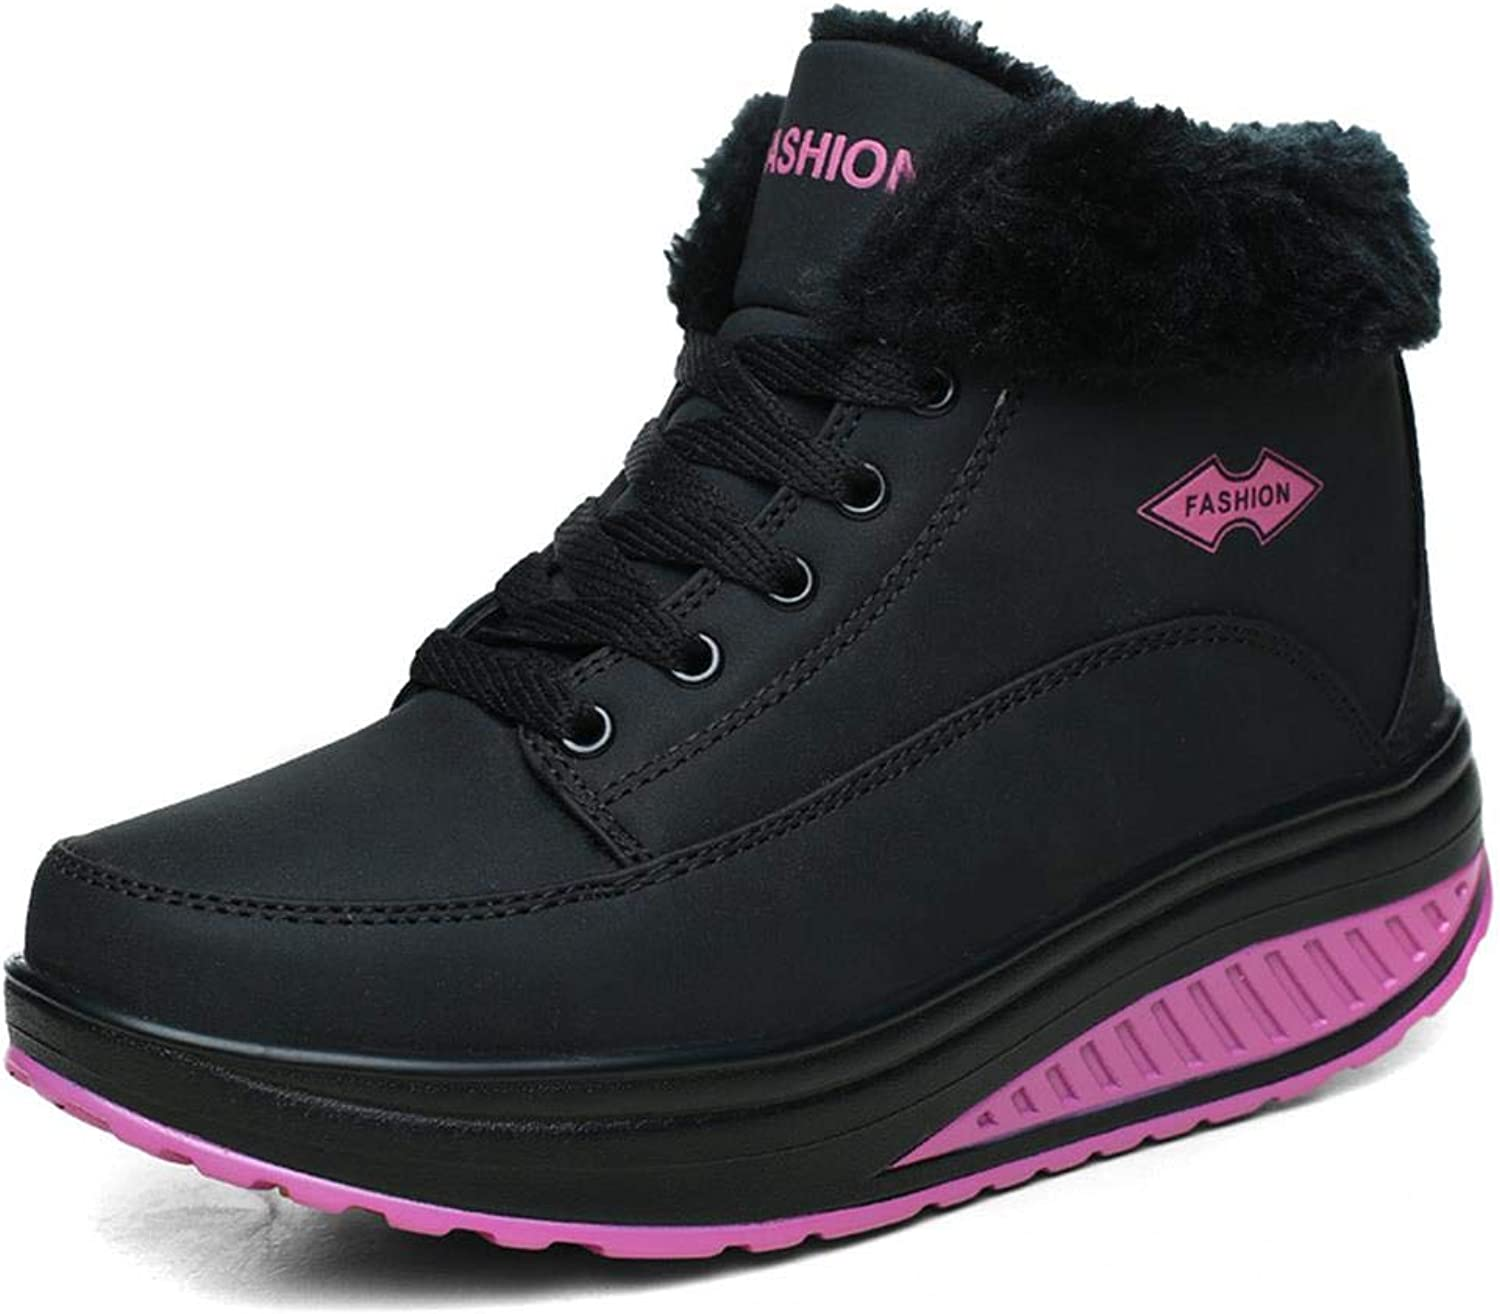 HangeZ Women Female Boots Winter Women Warm Snow Cotton-padde Velvet shoes Black Black 5.5